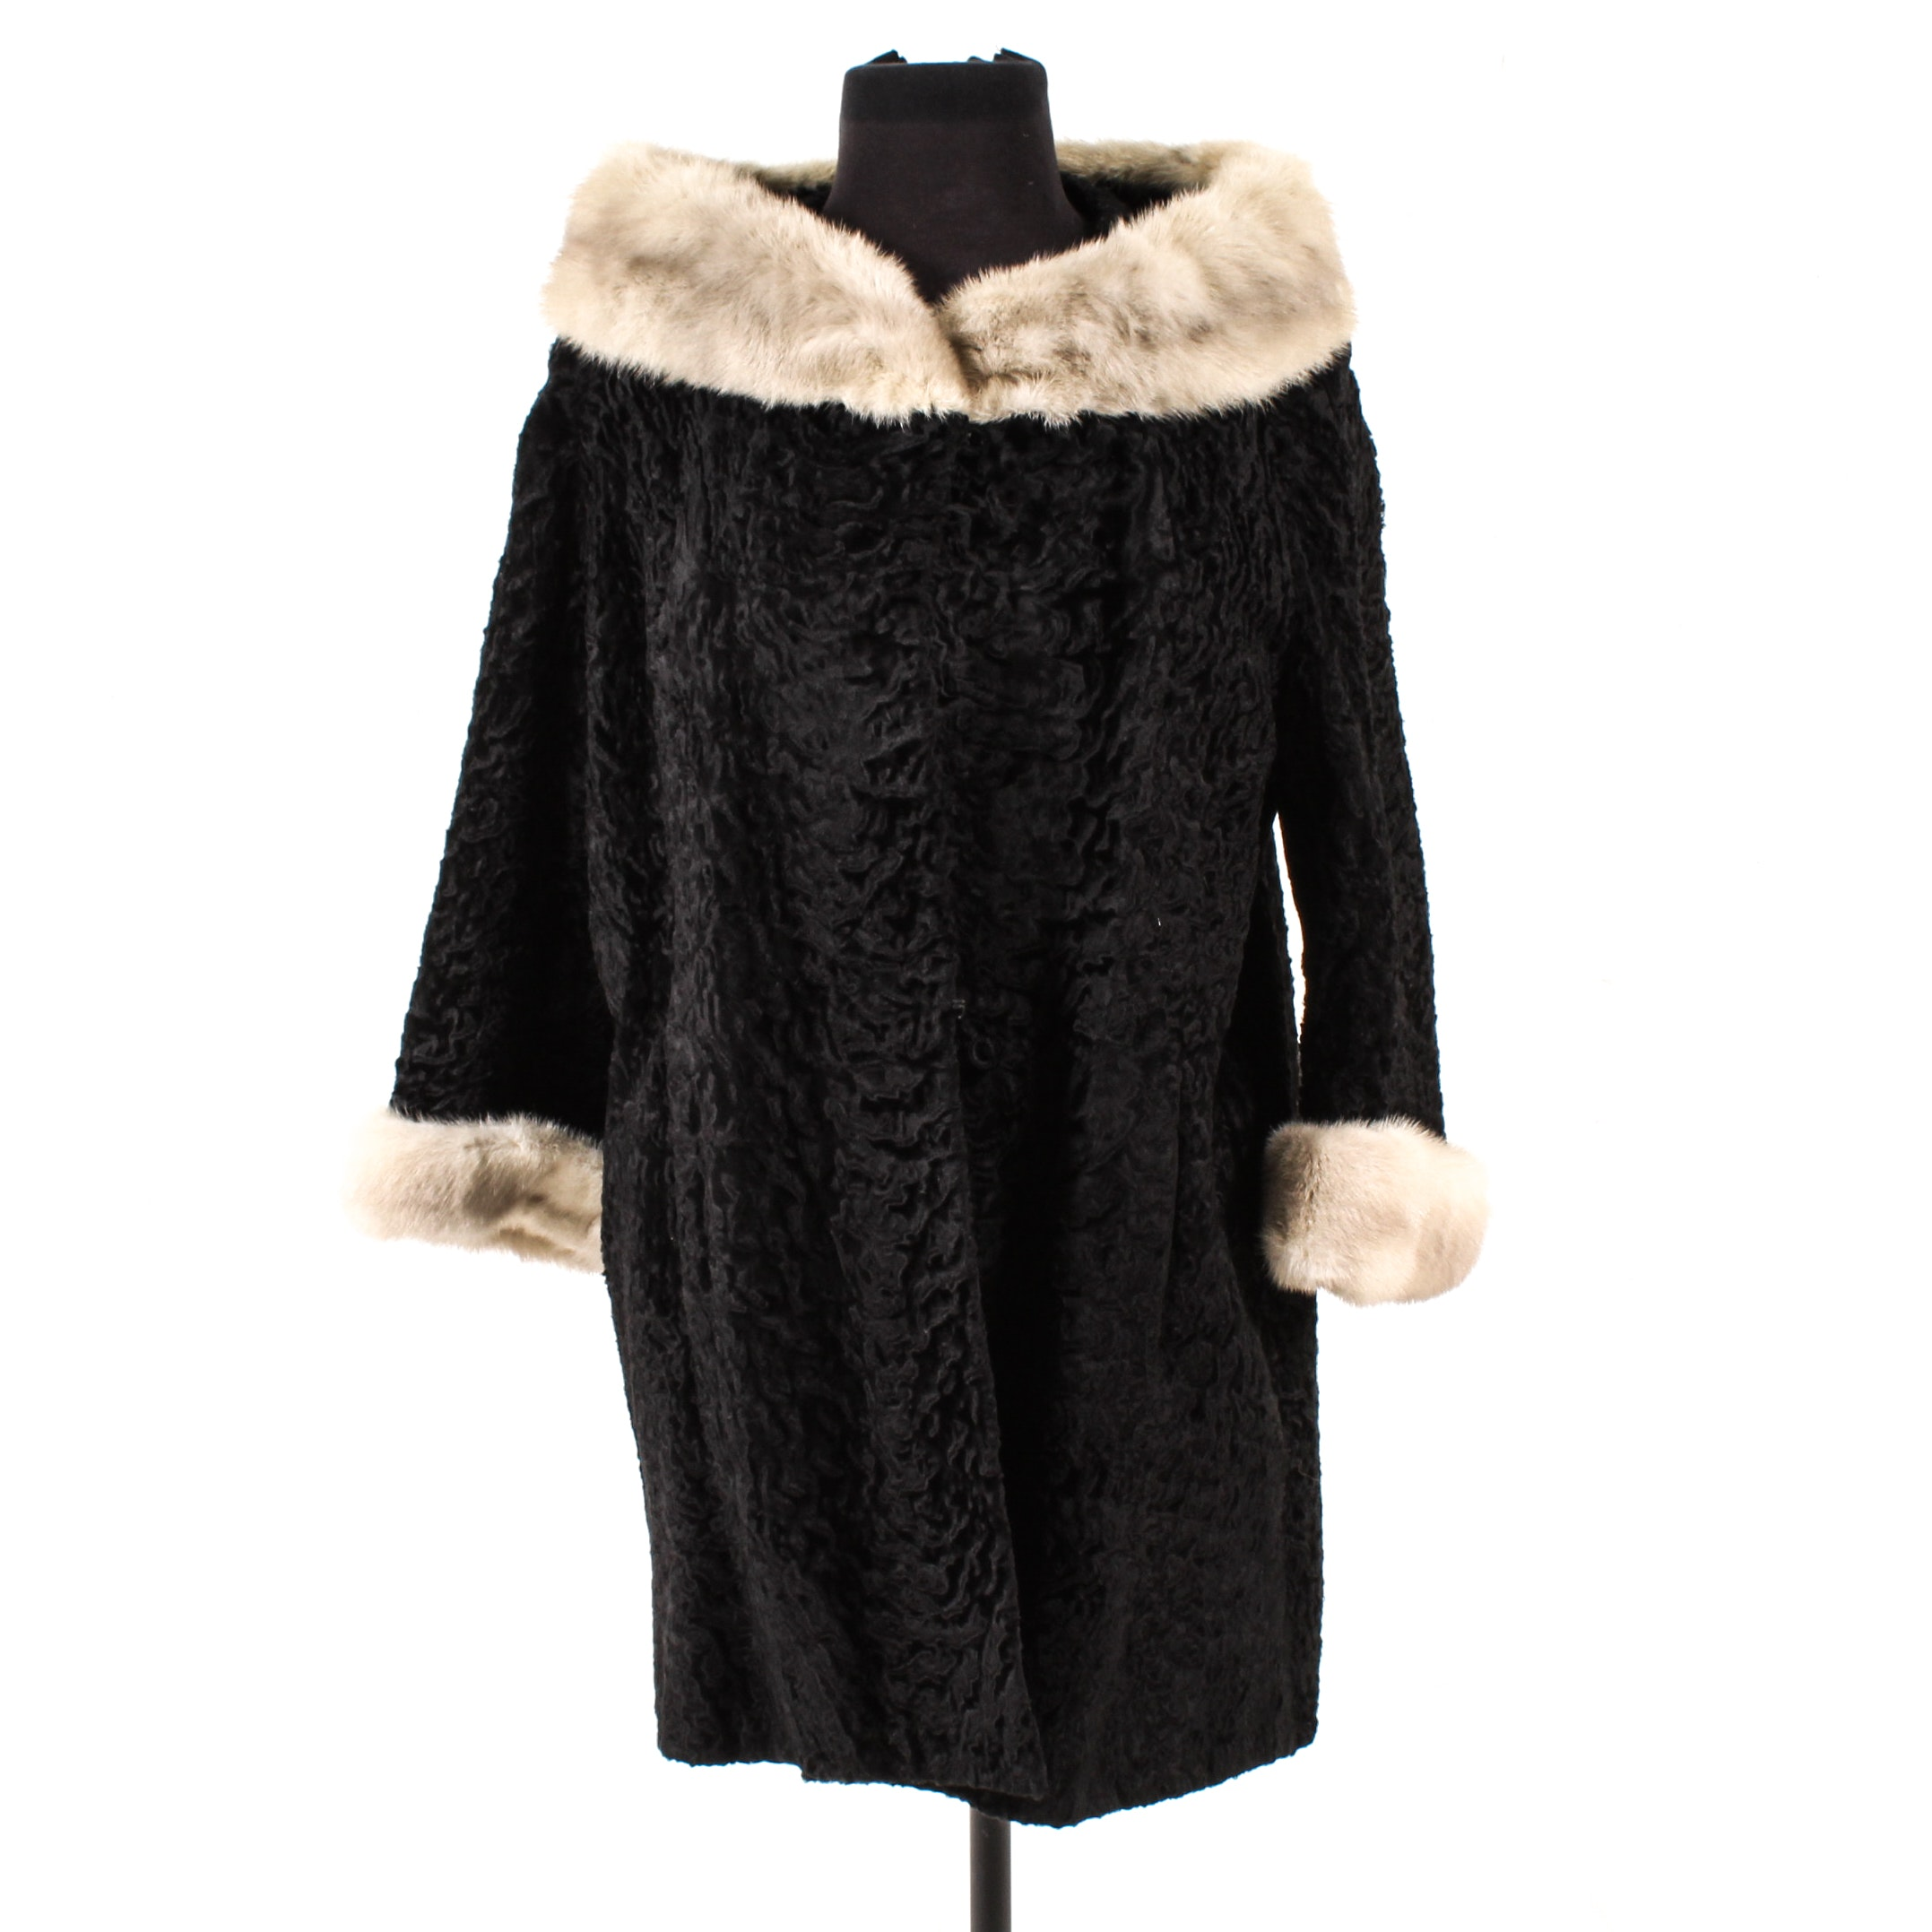 Black Broadtail Lamb Fur Coat with Mink Fur Trim, Mid-20th Century Vintage